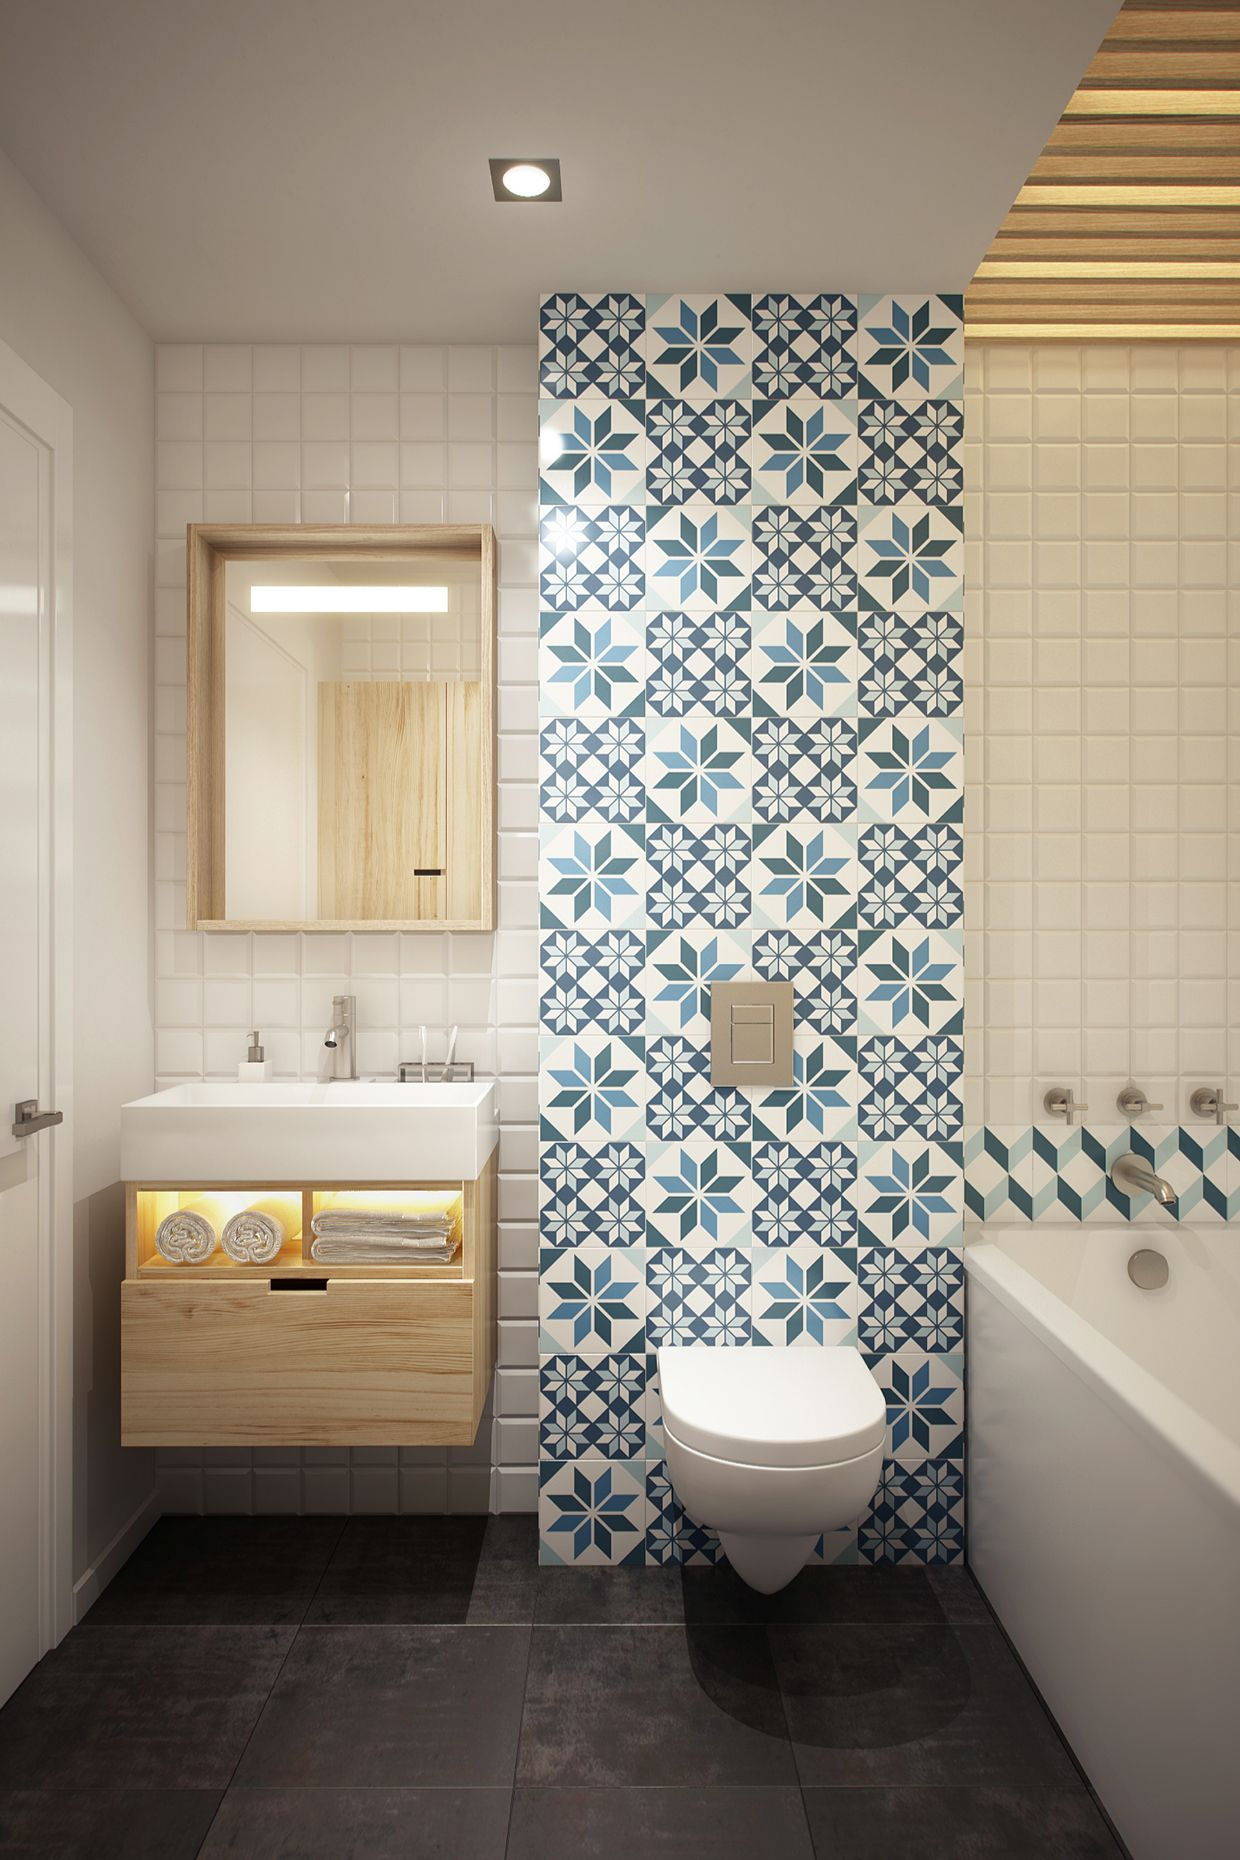 The patterned feature wall really helps to bring this small bathroom